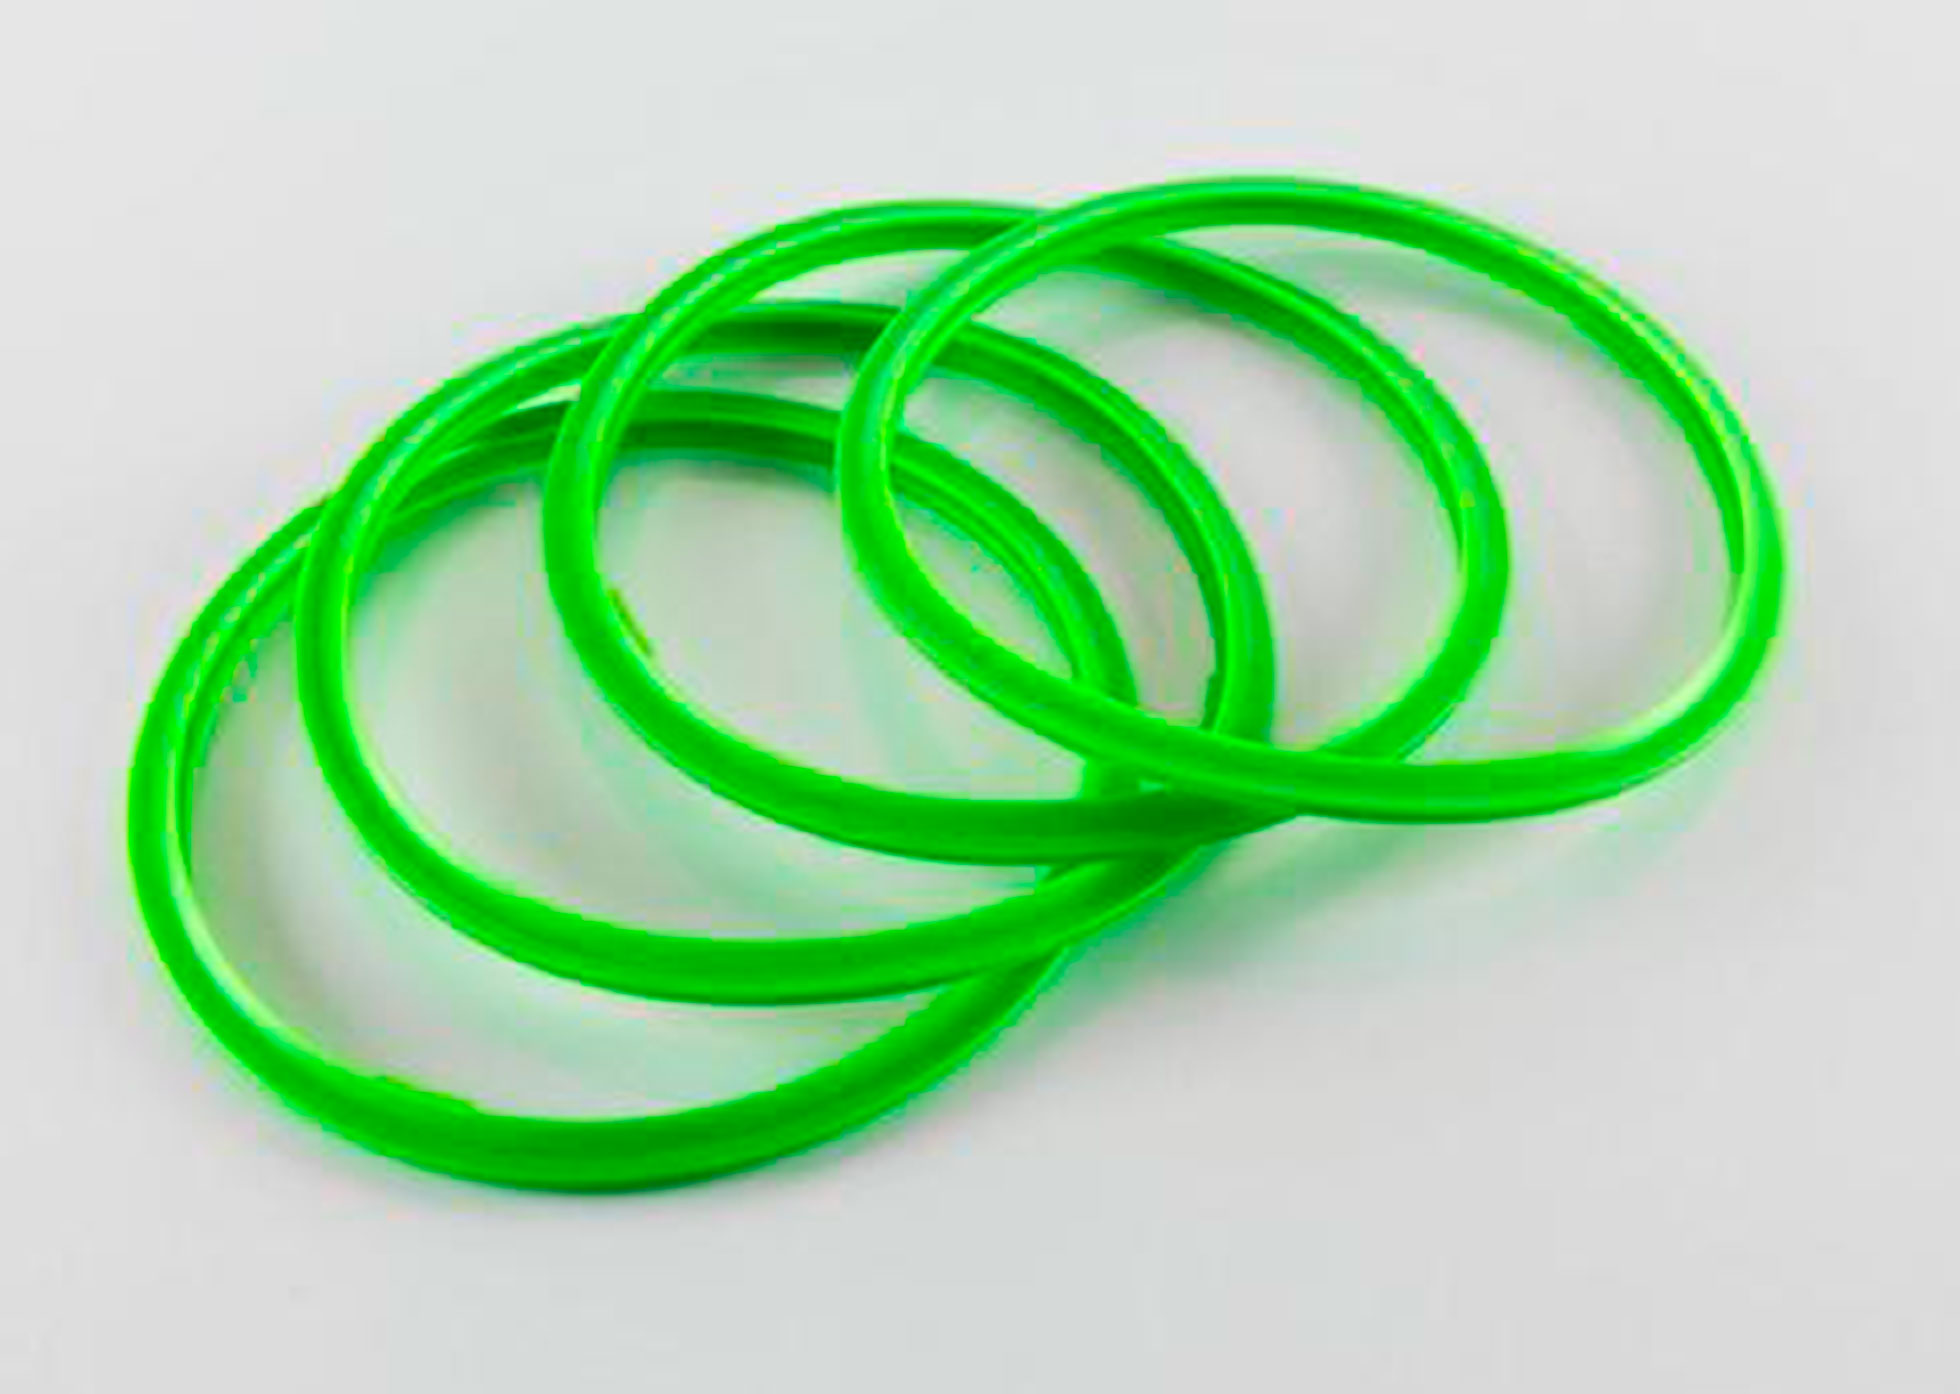 Podiaclave Accessories - Green Gasket